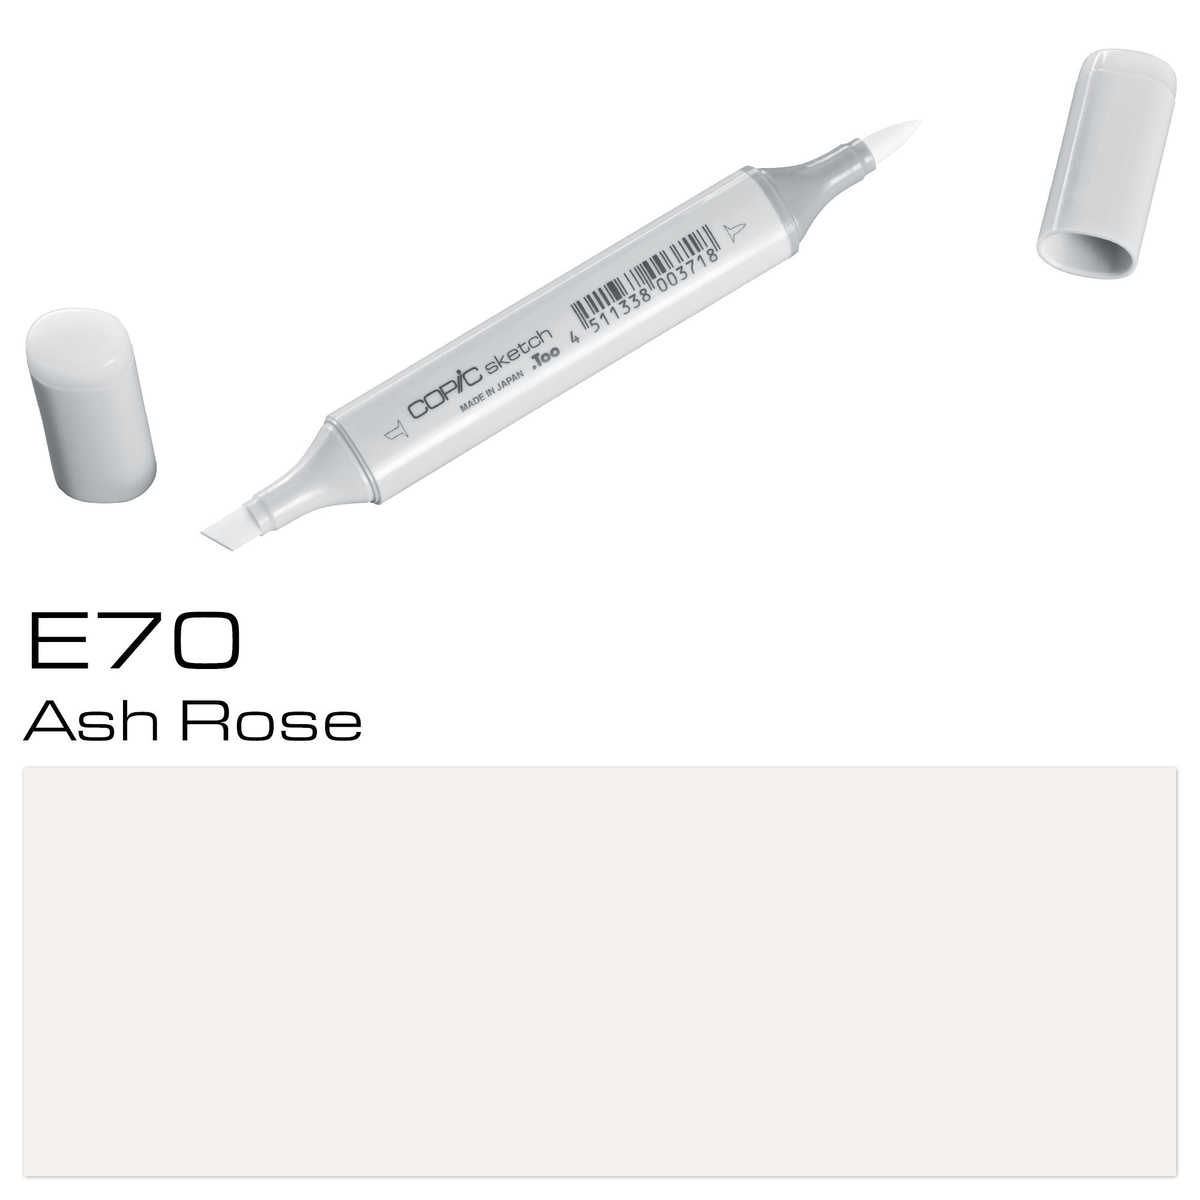 Copic Sketch E 70 ash rose